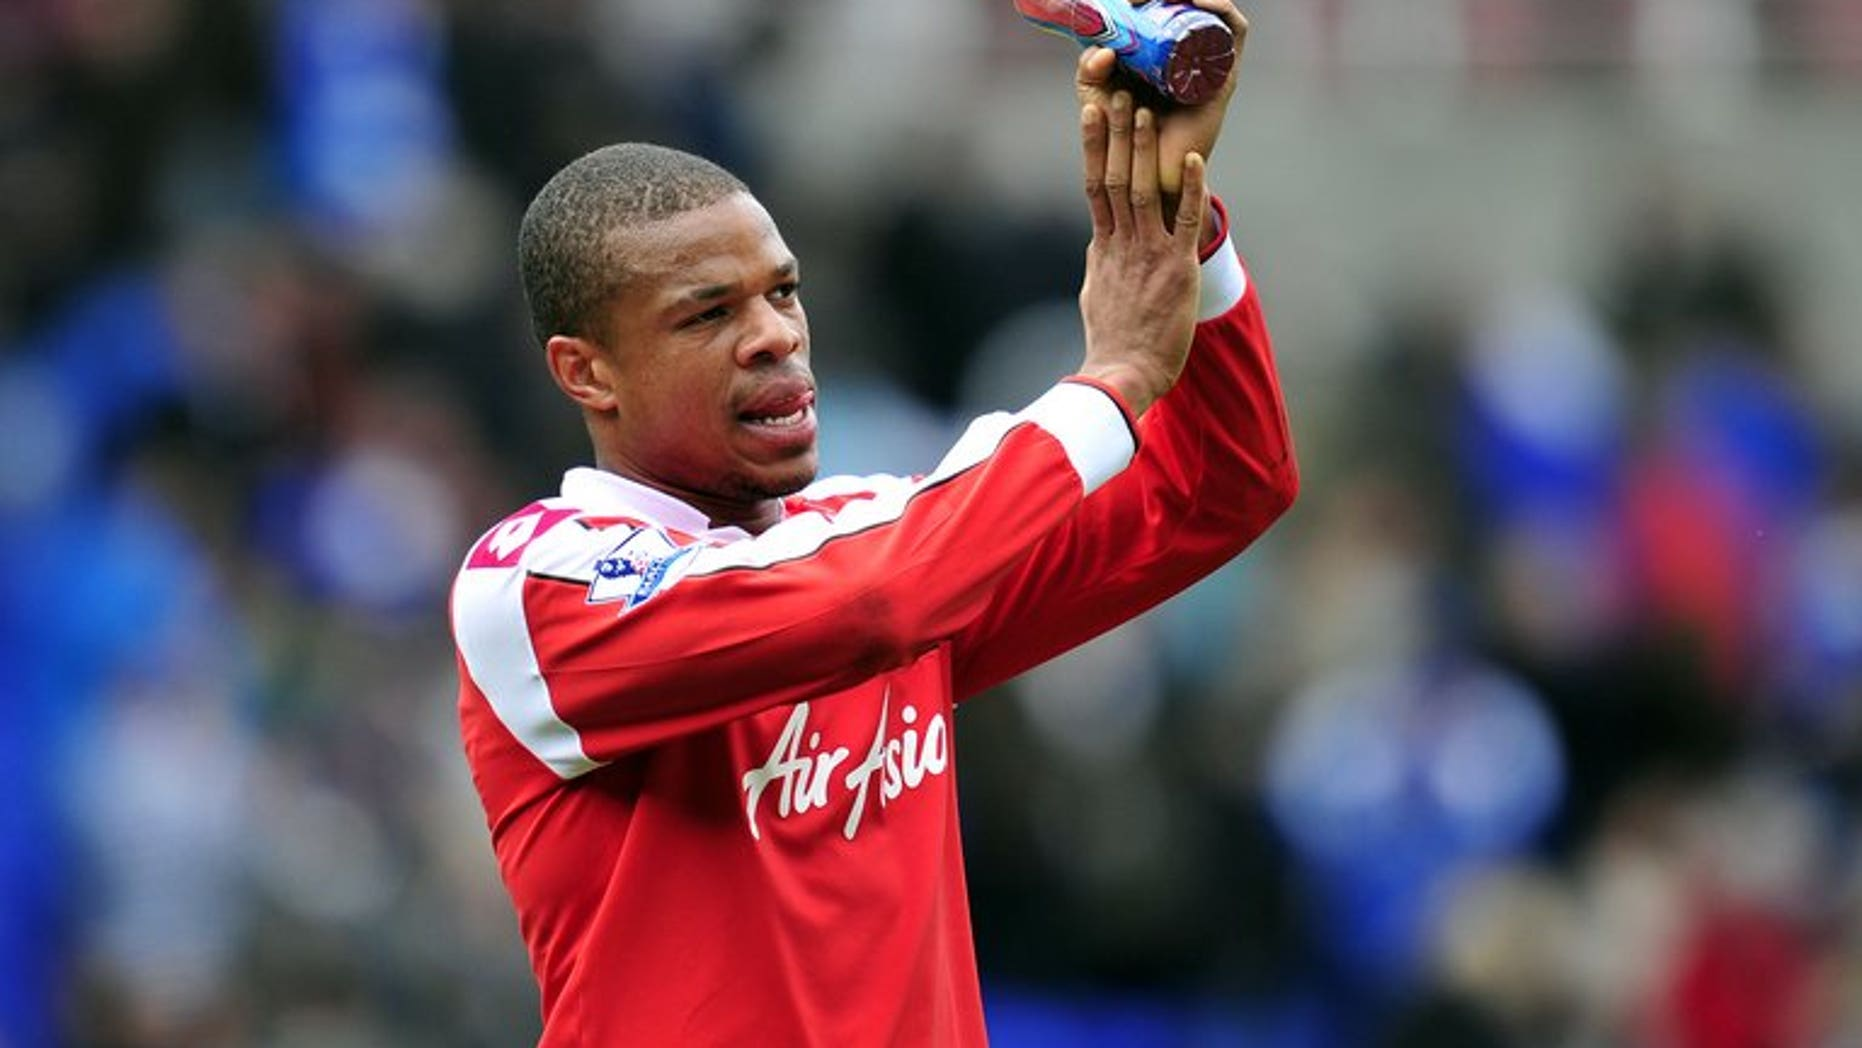 Queens Park Rangers' French striker Loic Remy thanks the fans at the Madejski Stadium in Reading on April 28, 2013. Newcastle finally made their first significant signing since the end of last season as Remy joined the Premier League club on a season-long loan from QPR.